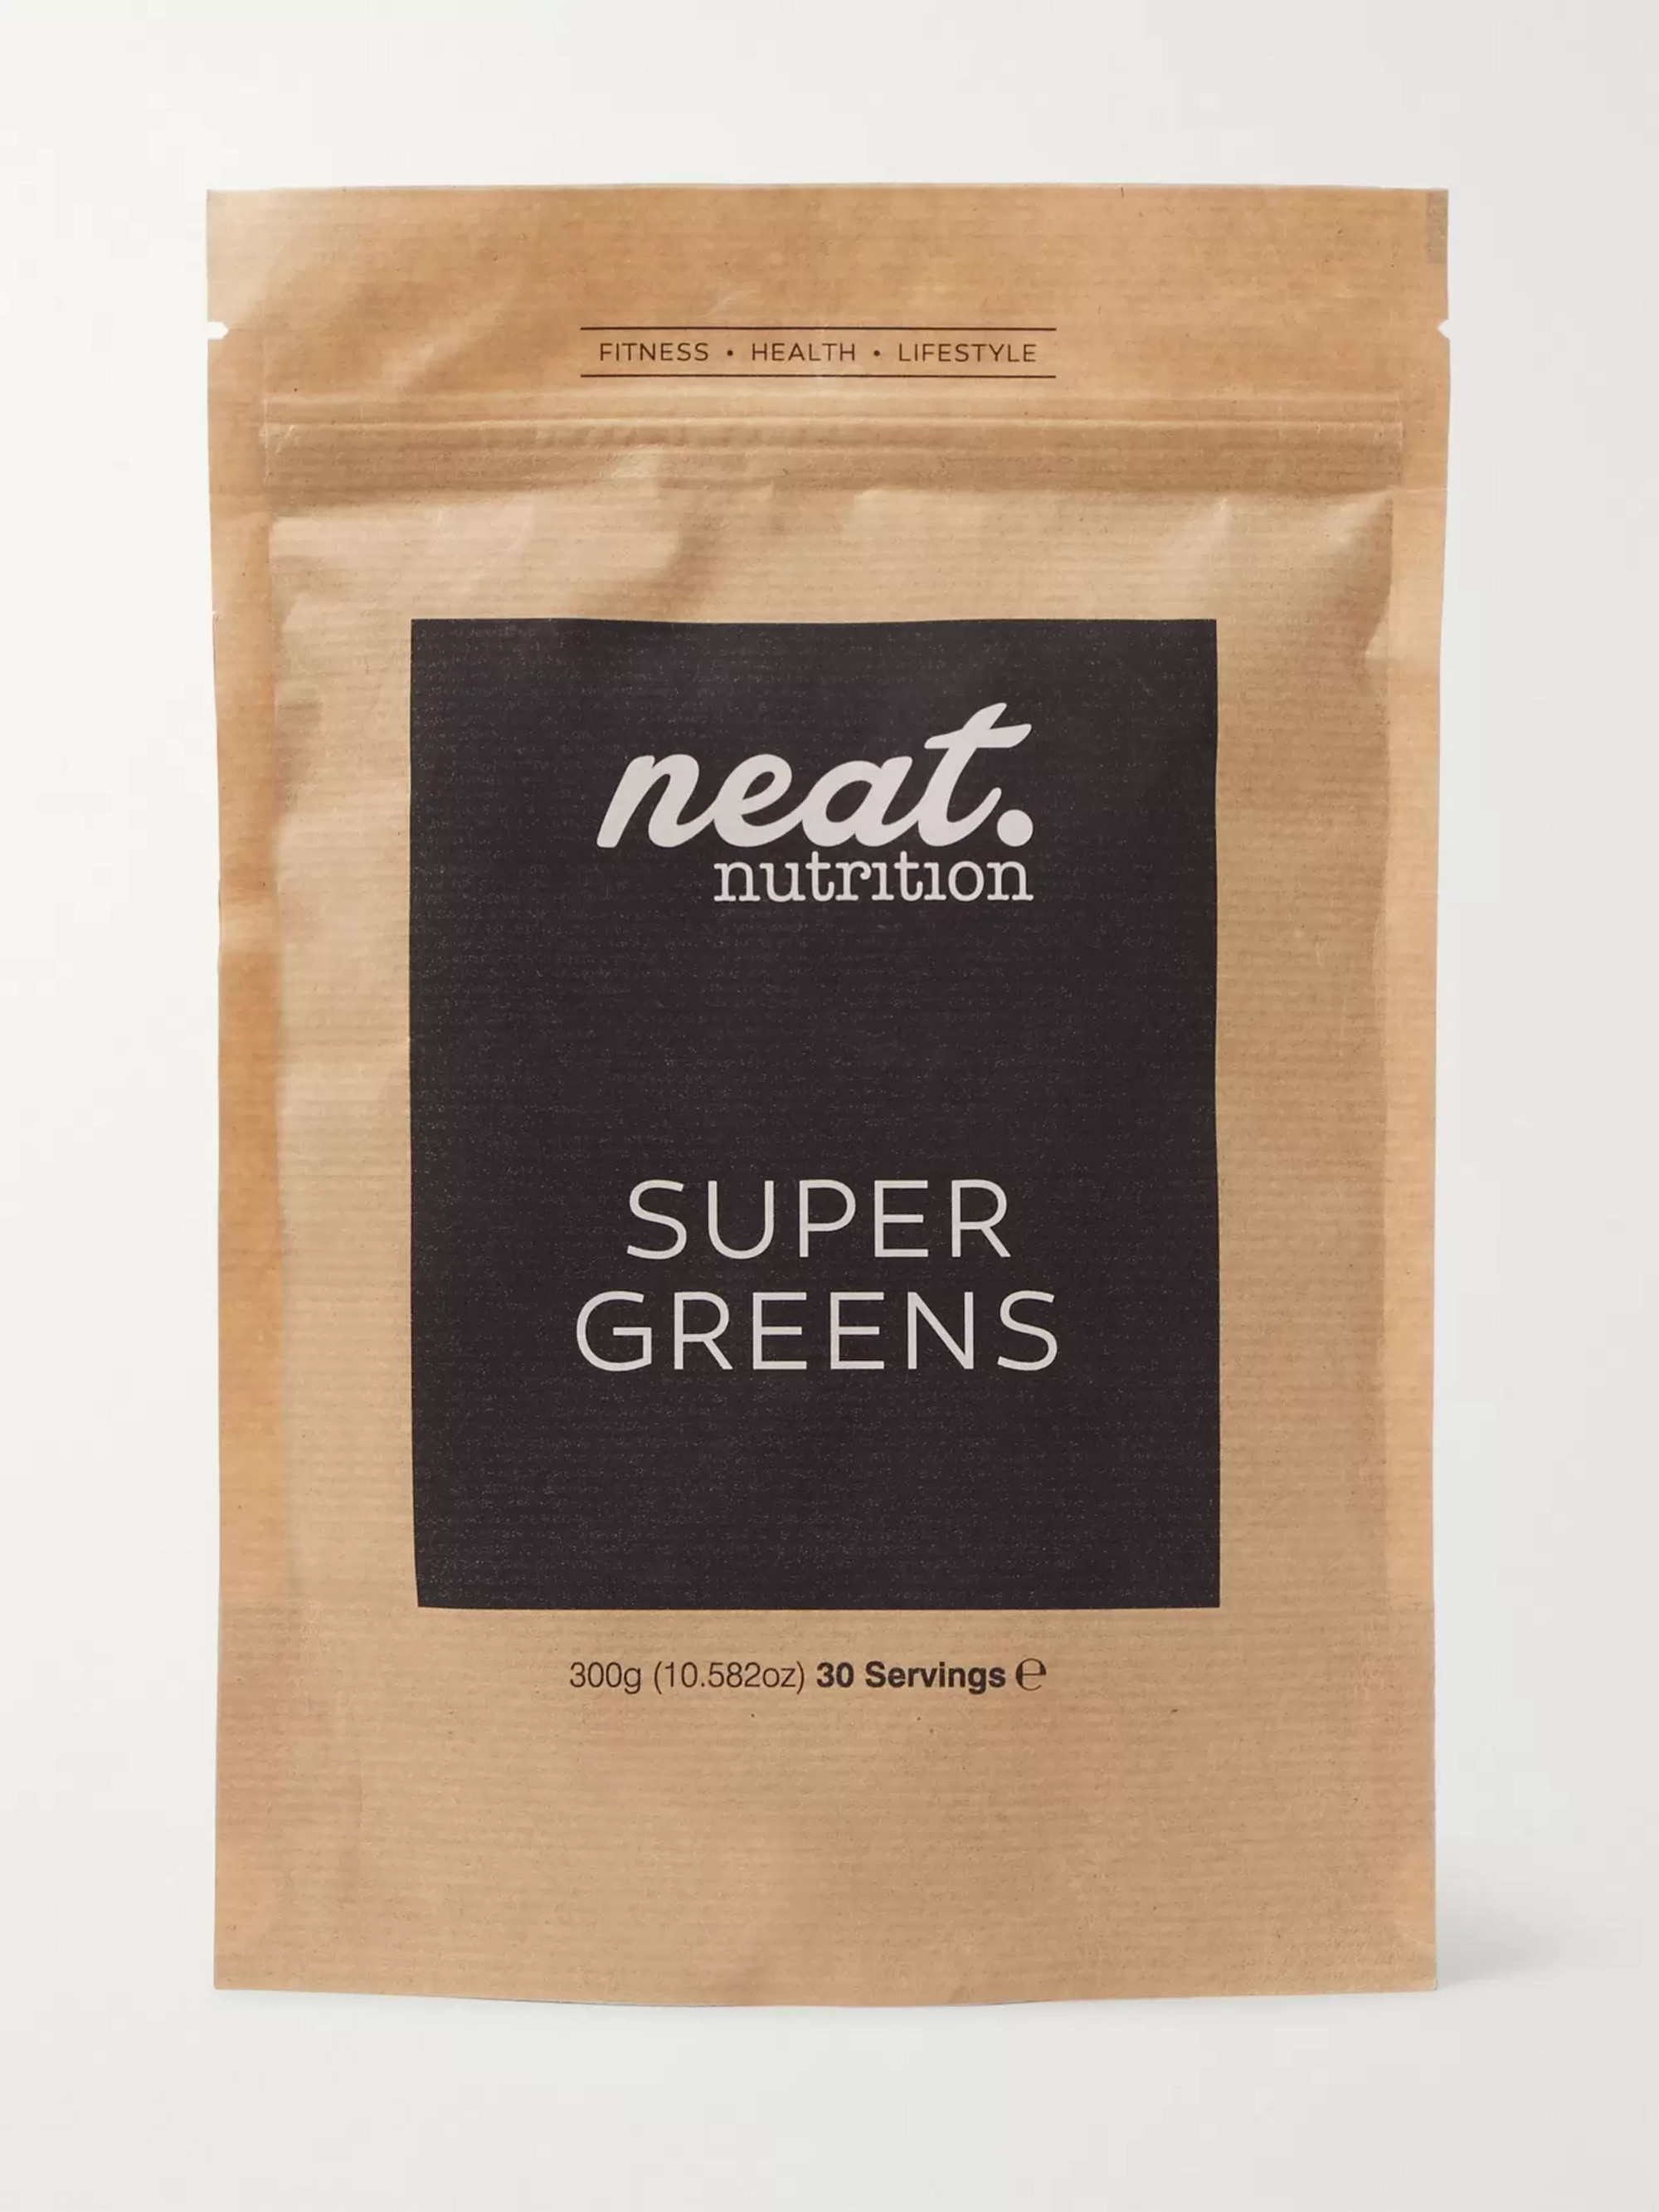 Neat Nutrition Super Greens Powder, 300g